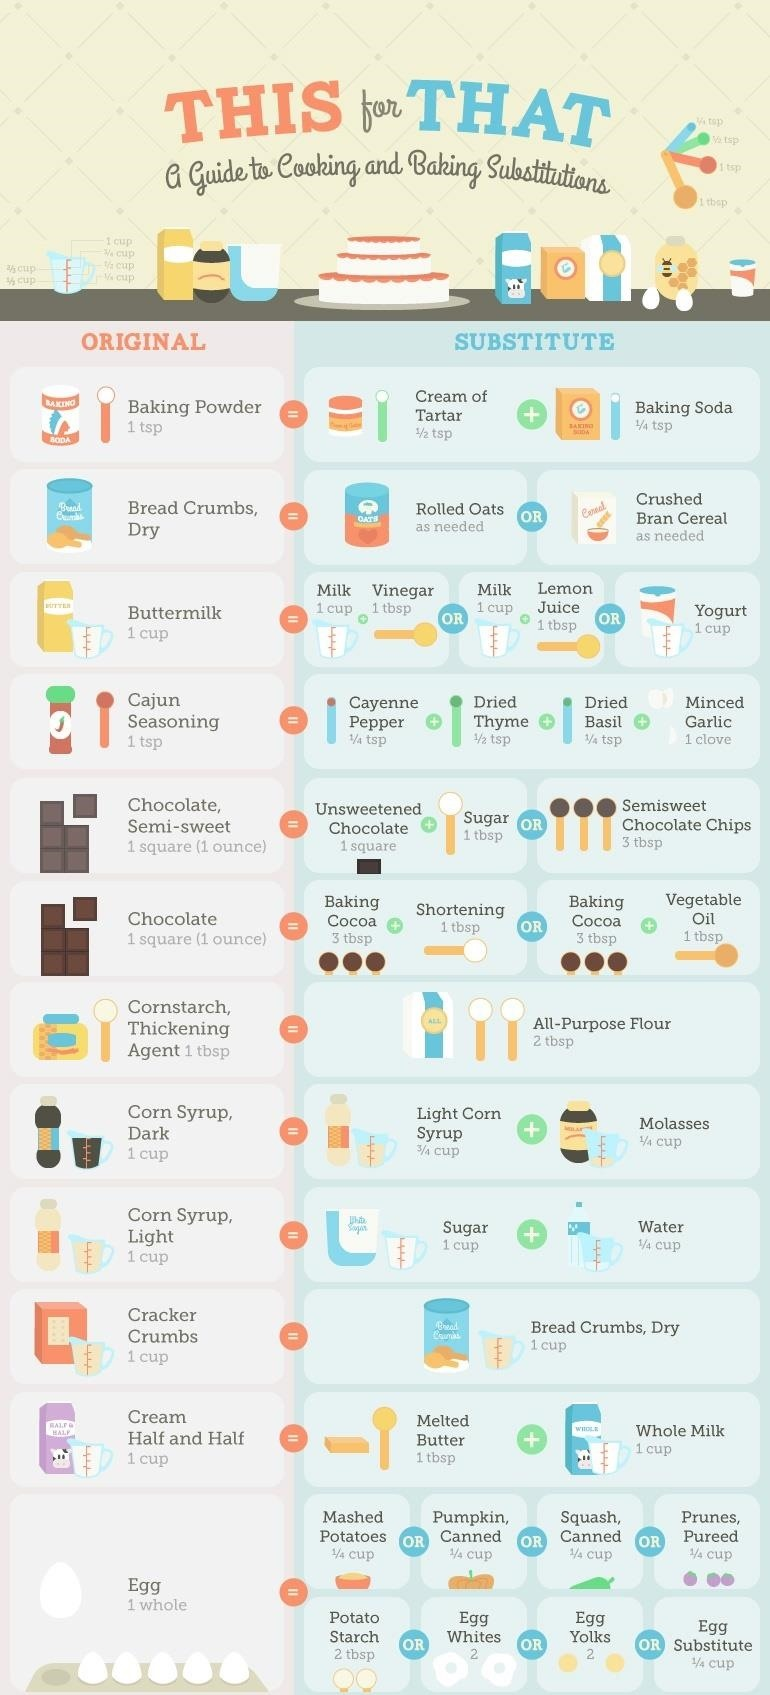 Missing an Ingredient? Consult This Guide to Cooking & Baking Substitutions